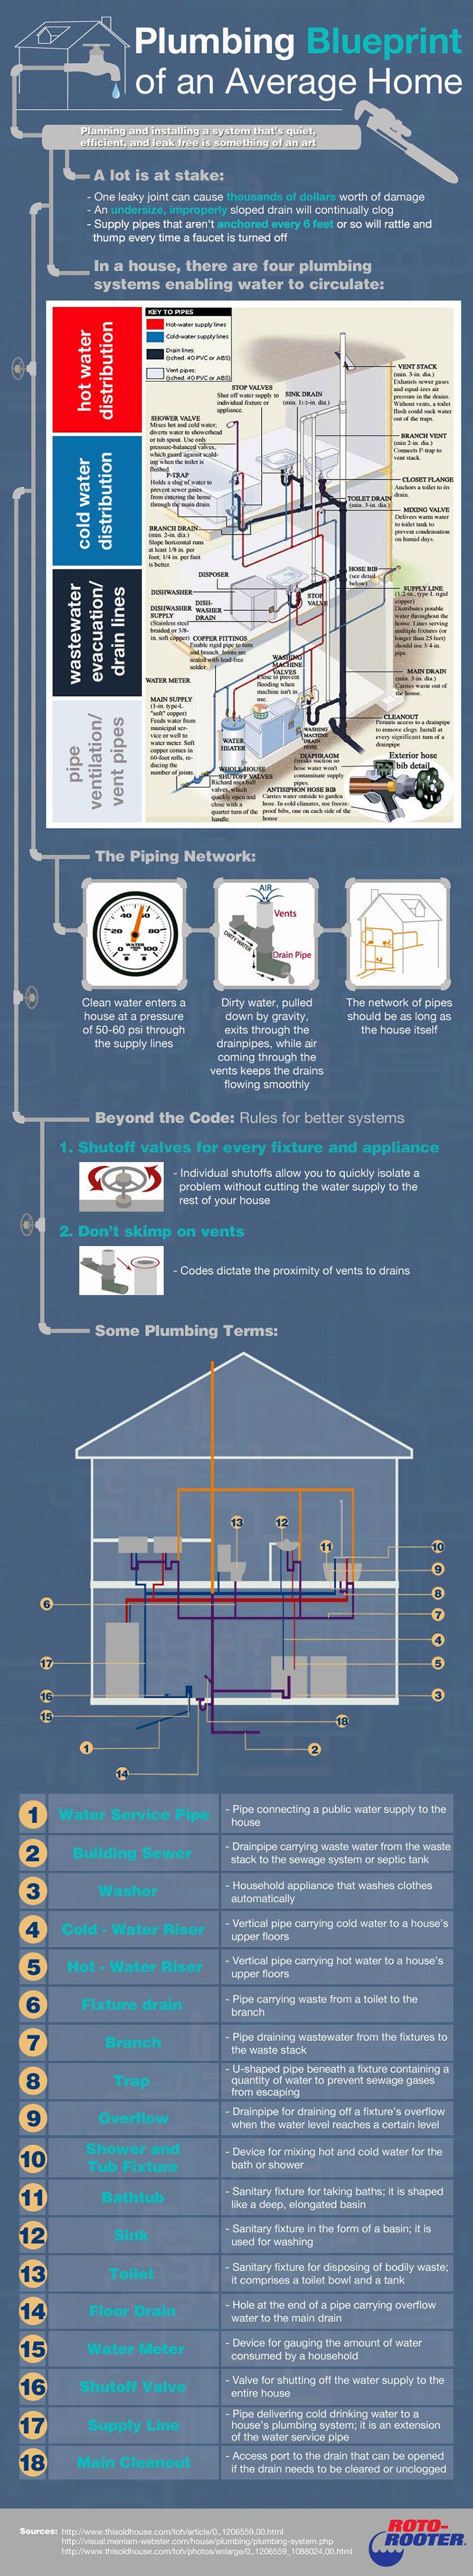 Plumbing blueprint tips tricks diy lifehacks pinterest interested in the plumbing blueprint of your home check out this roto rooter info graphic that details plumbing blueprints of an average home malvernweather Gallery